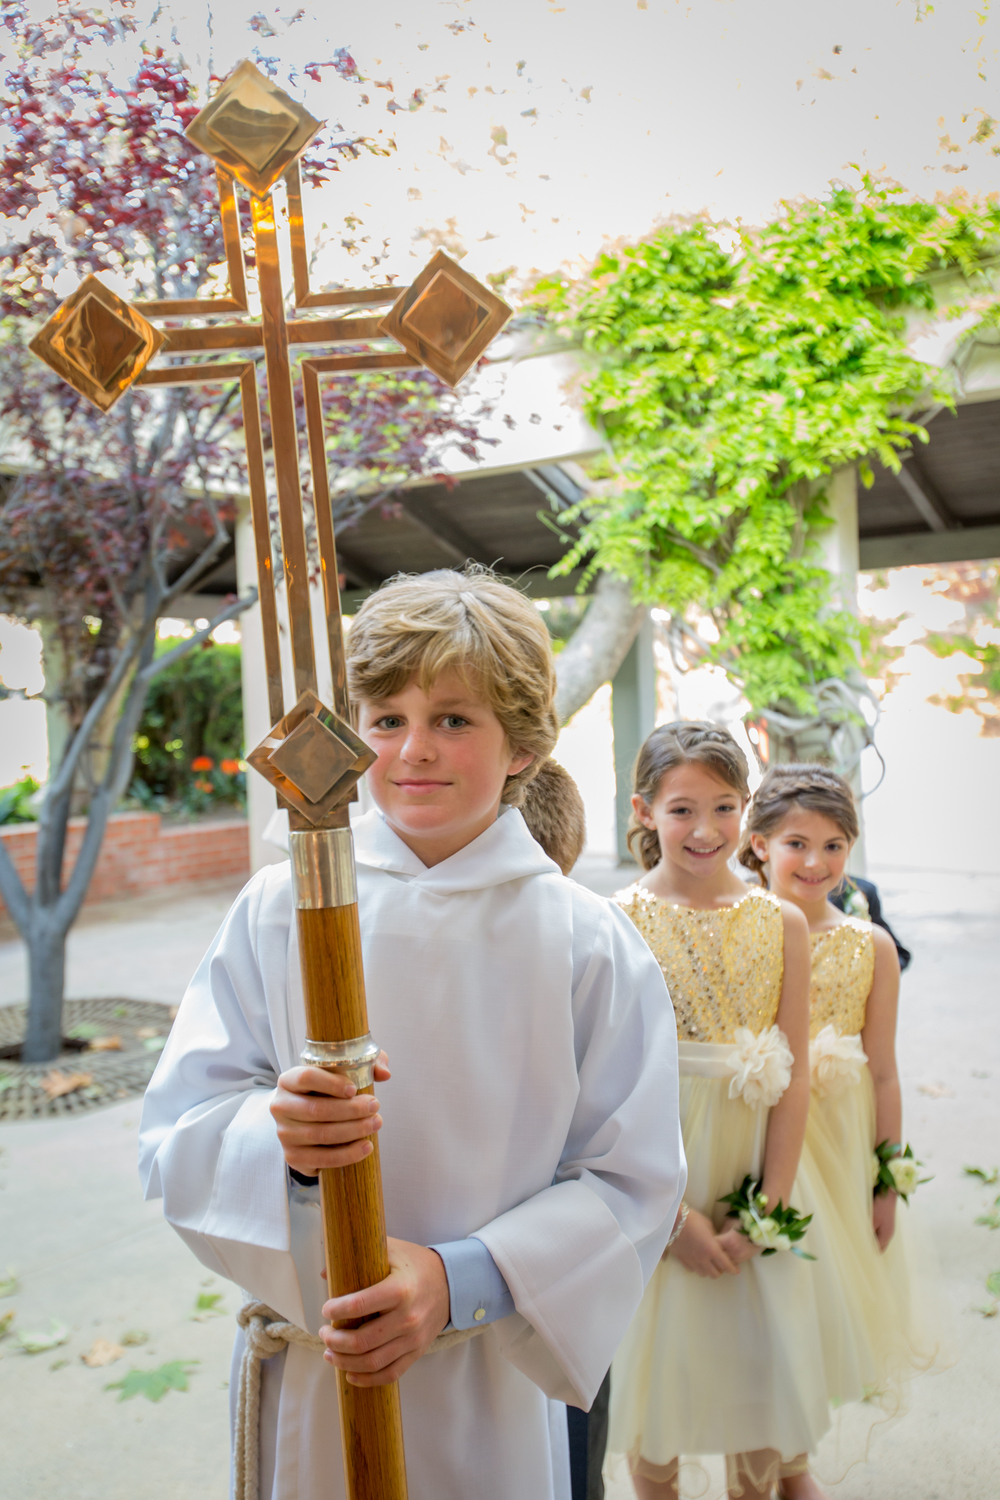 025 - kids in processional.jpg